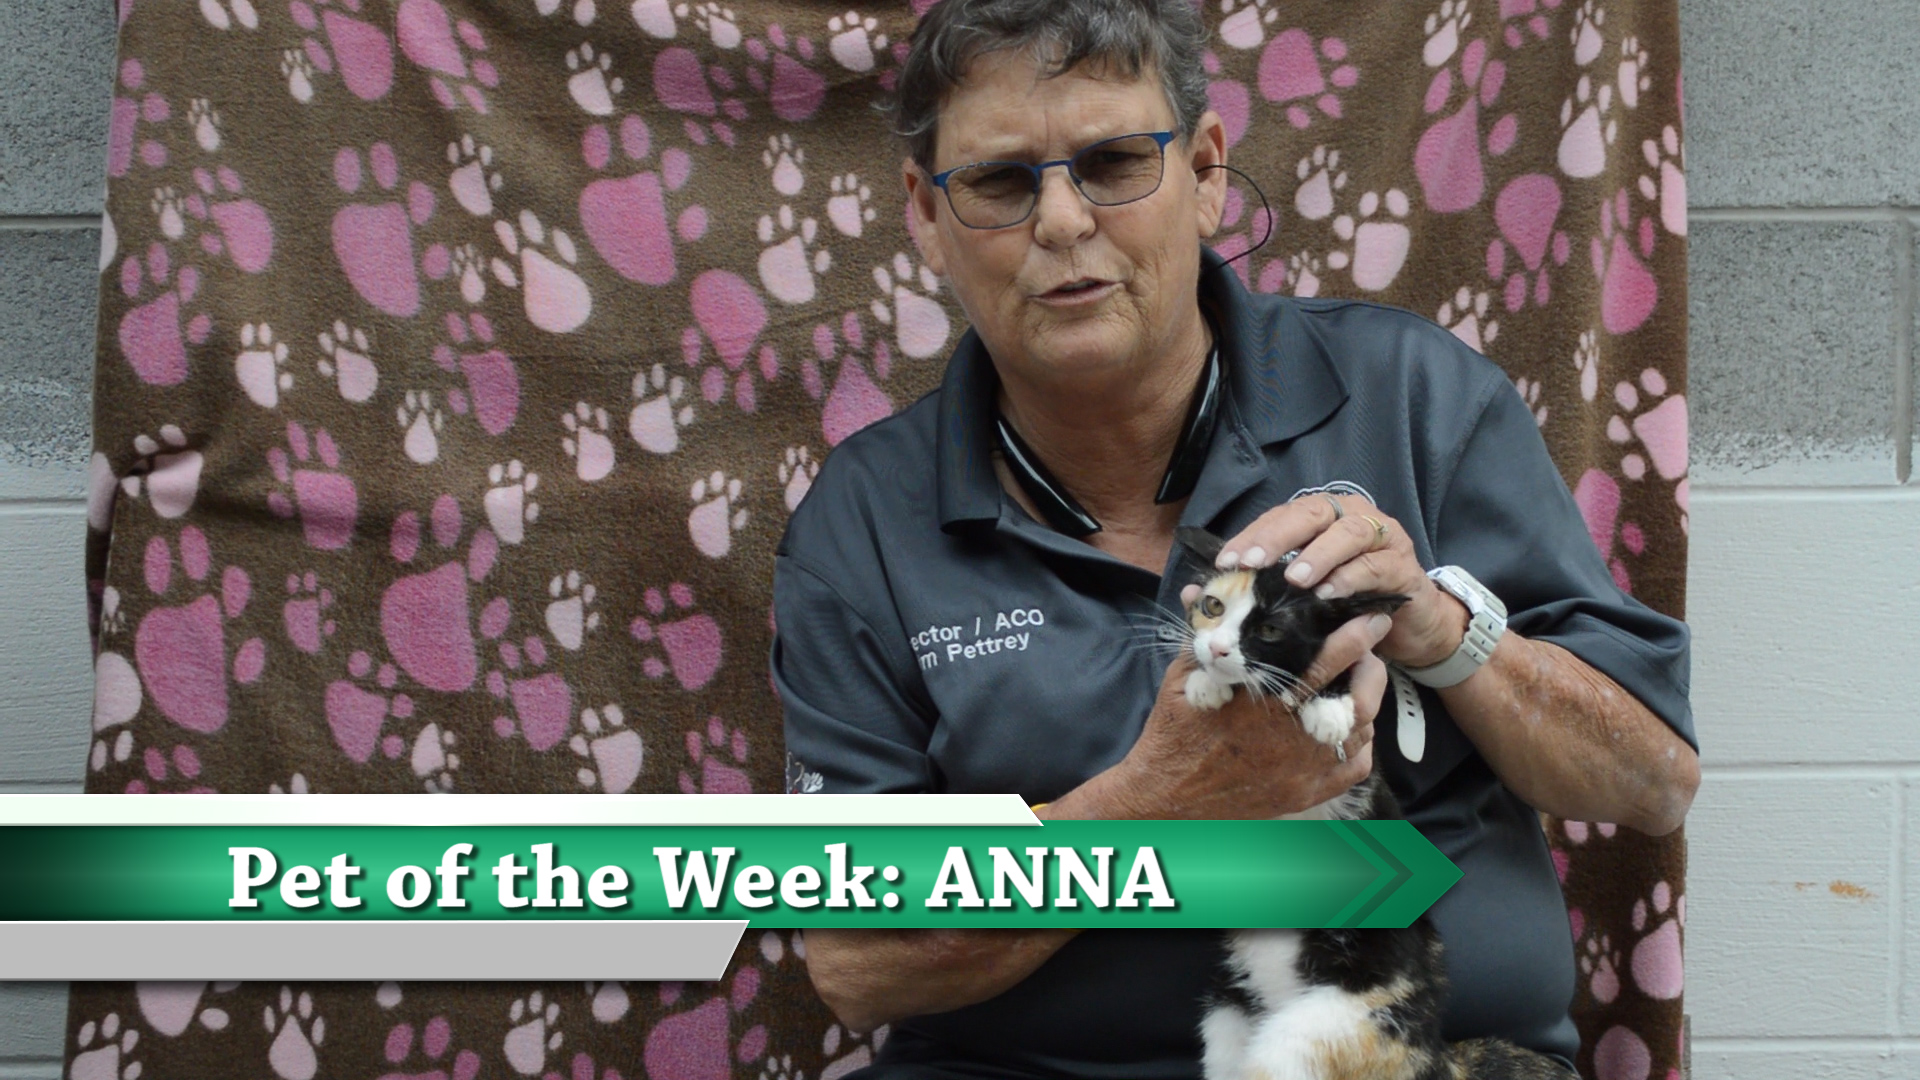 VIDEO: Pet of the Week - Anna